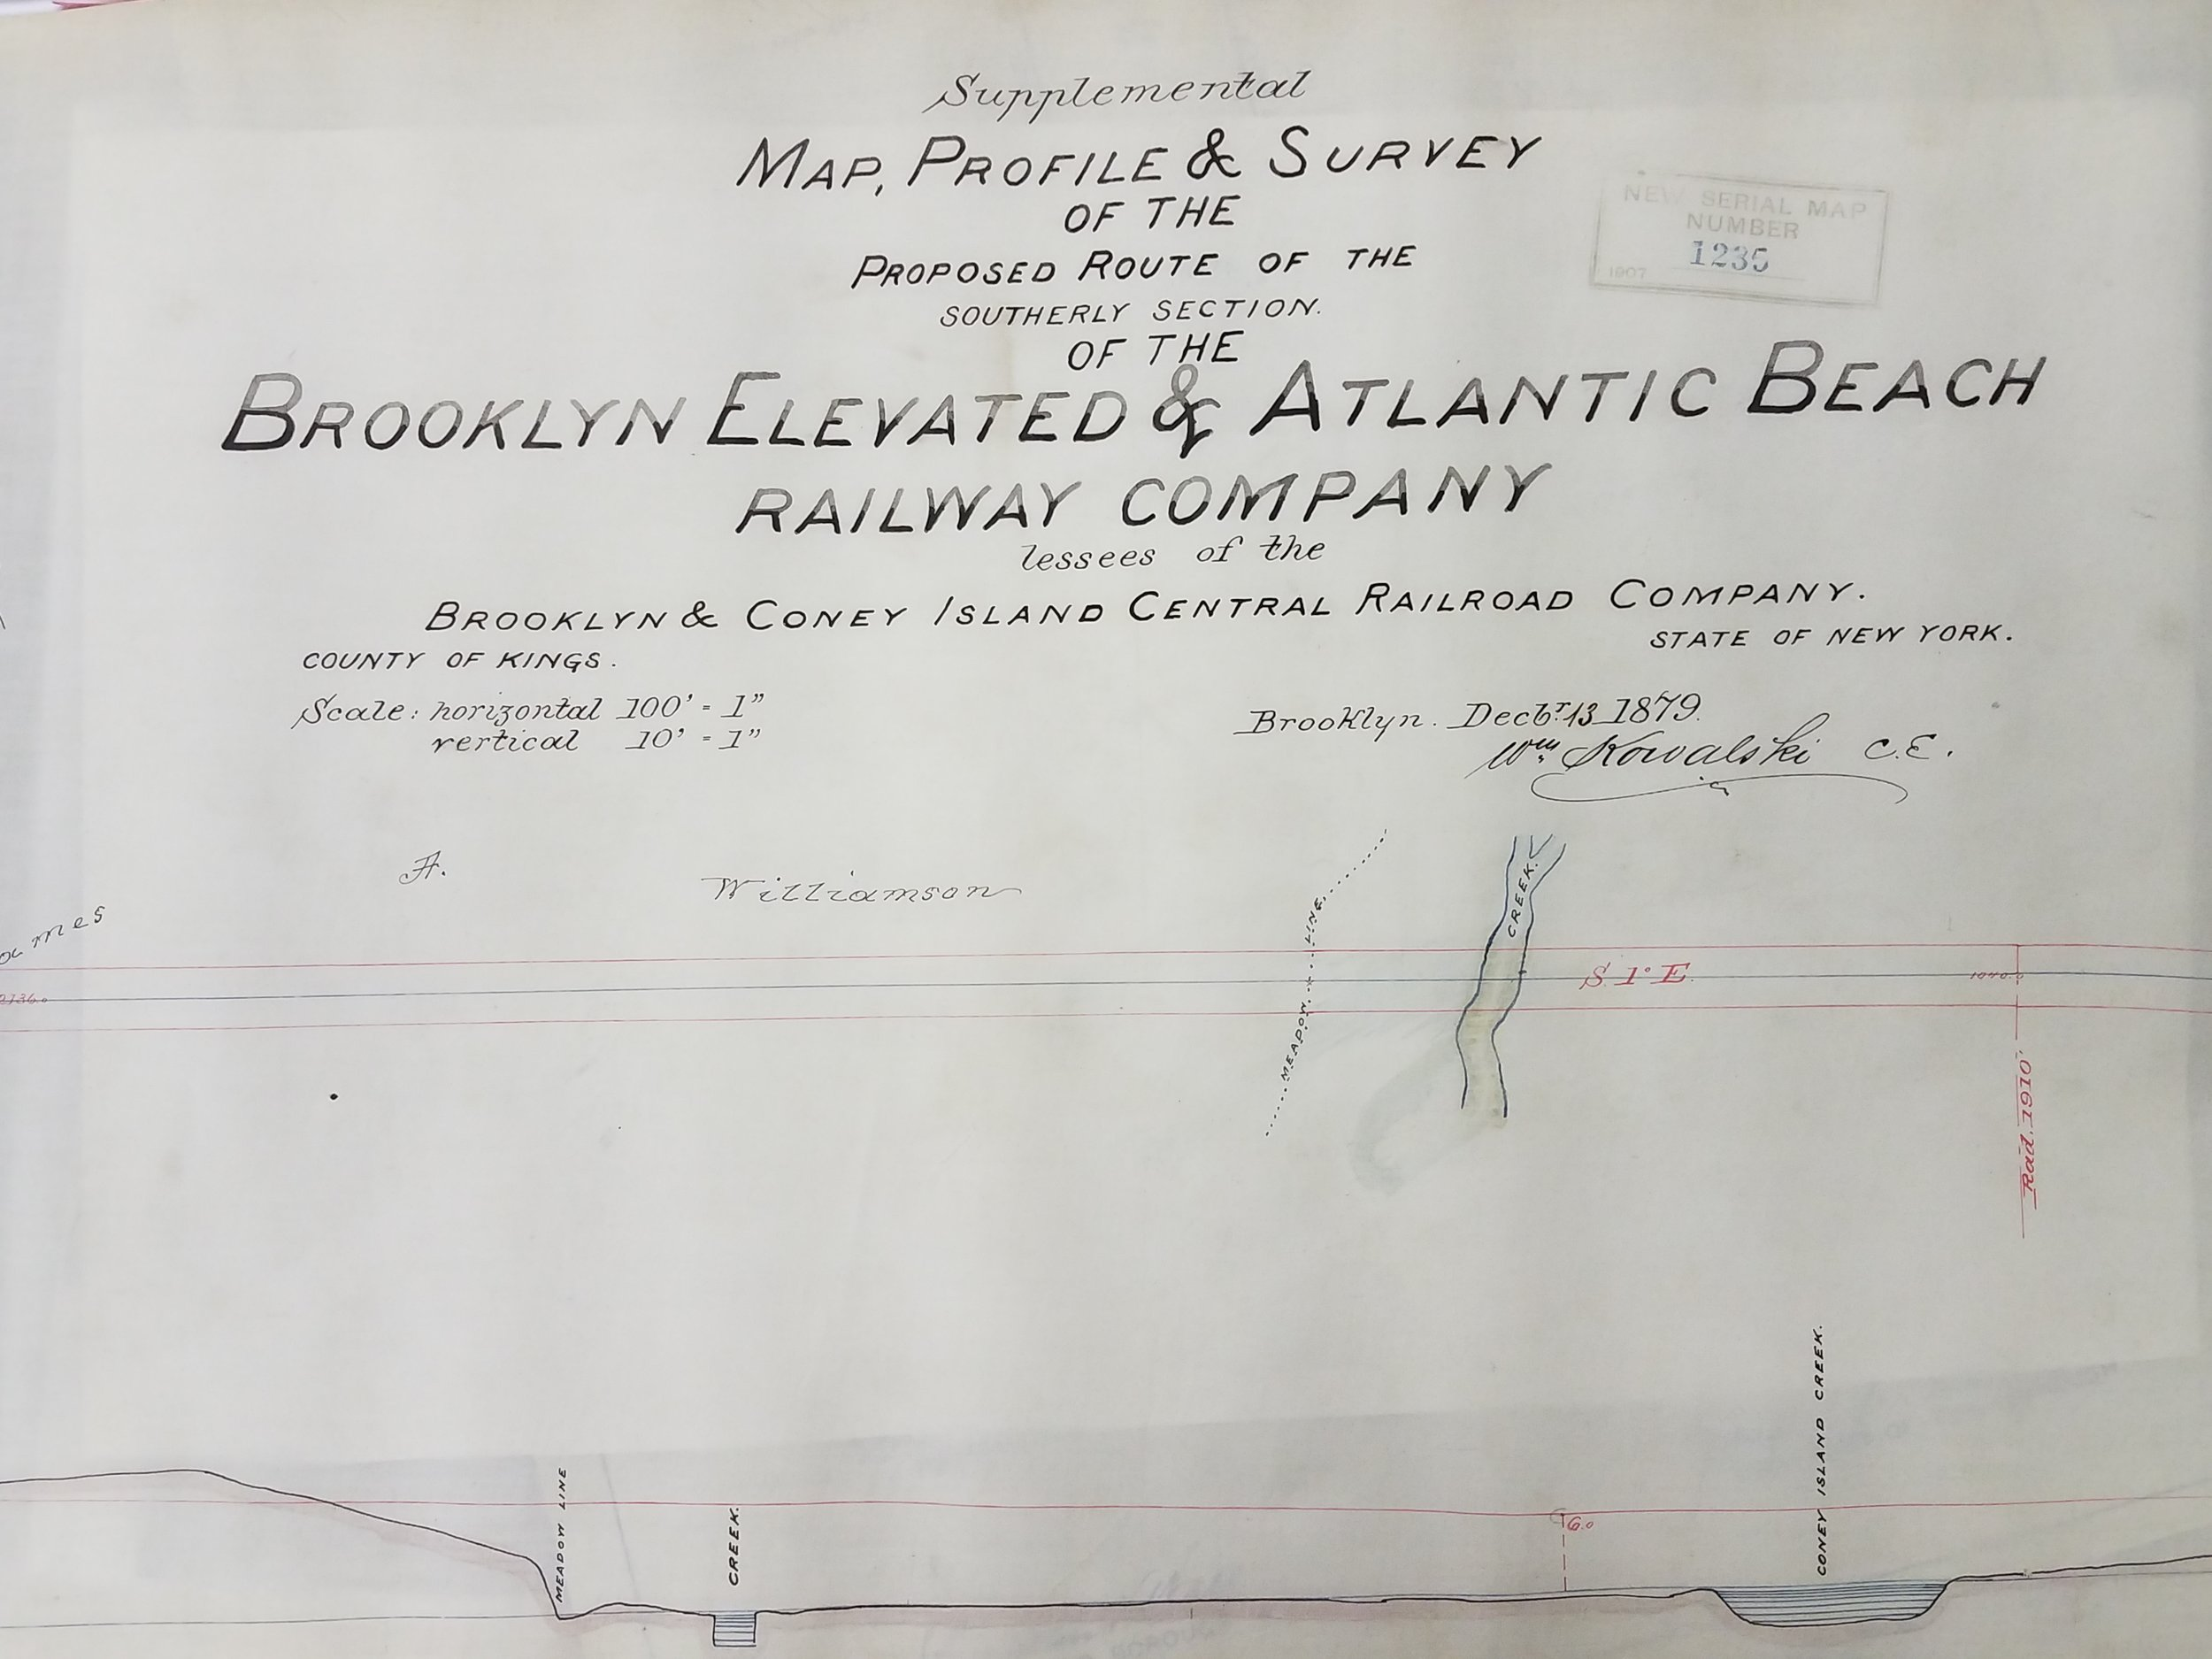 Supplemental Map, Profile and Survey of the Proposed Route of the Southerly Section of the Brooklyn Elevated and Atlantic Beach Railway Company, 1879. City Register collection, NYC Municipal Archives.